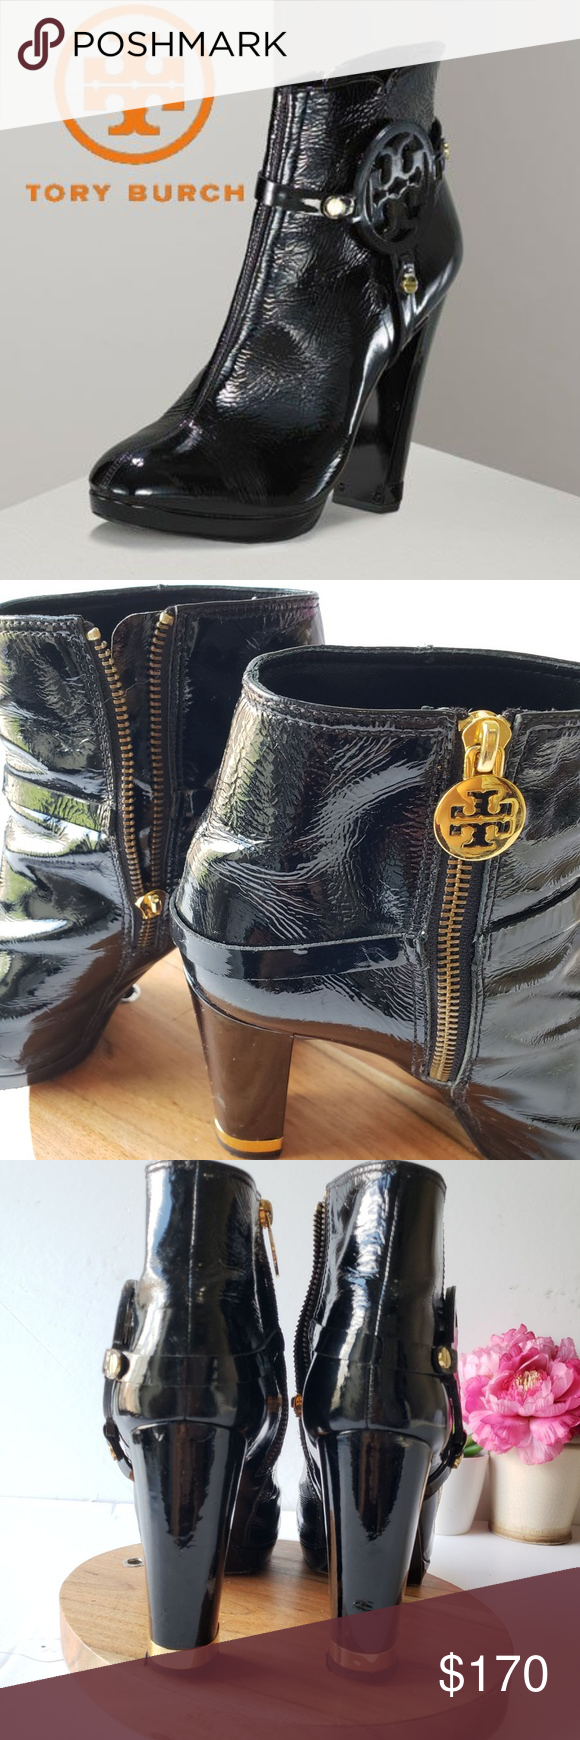 0781cb6ce0c6 Tory Burch sz 9 M Whitney Booties Tory Burch black patent leather booties  featuring gold tone hardware  goldtone zipper on the inside of the bootie